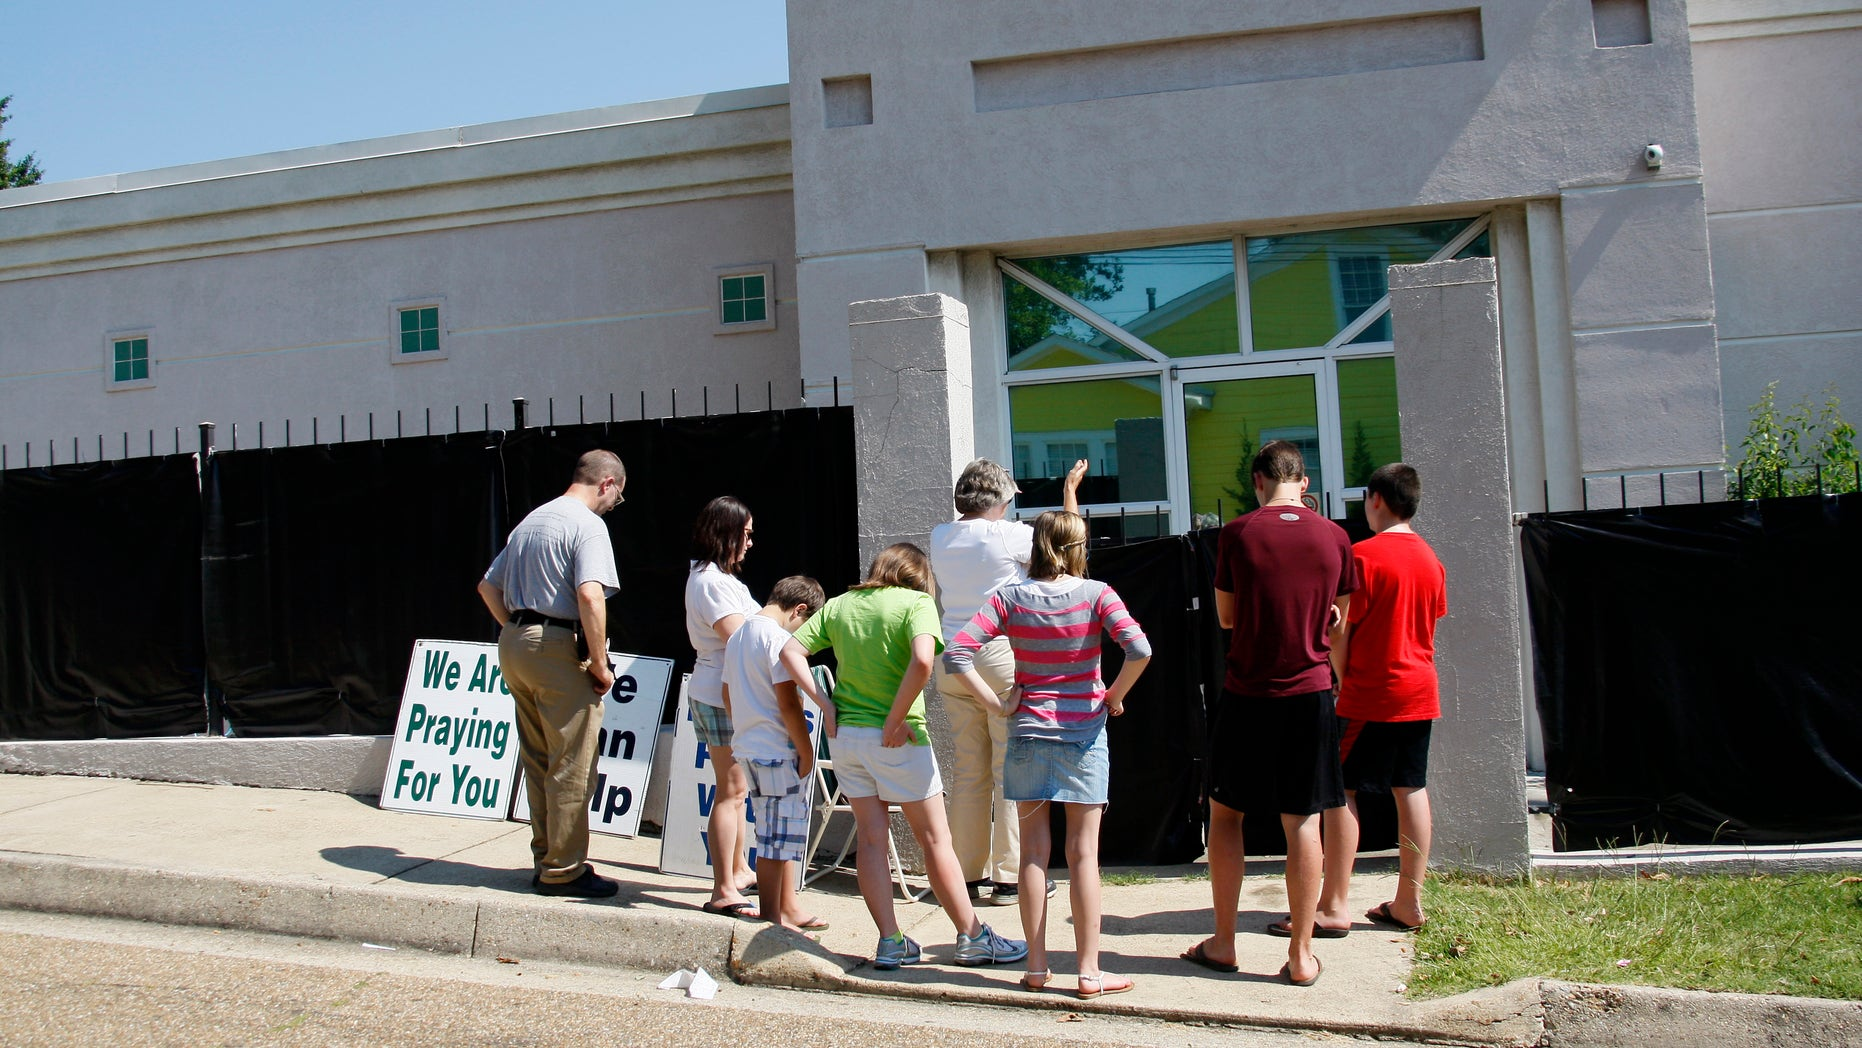 """June 27, 2012: In this photograph, anti-abortion advocates stand outside Mississippi's only abortion clinic, singing and praying for their patients, and """"counseling"""" them to reject abortion."""